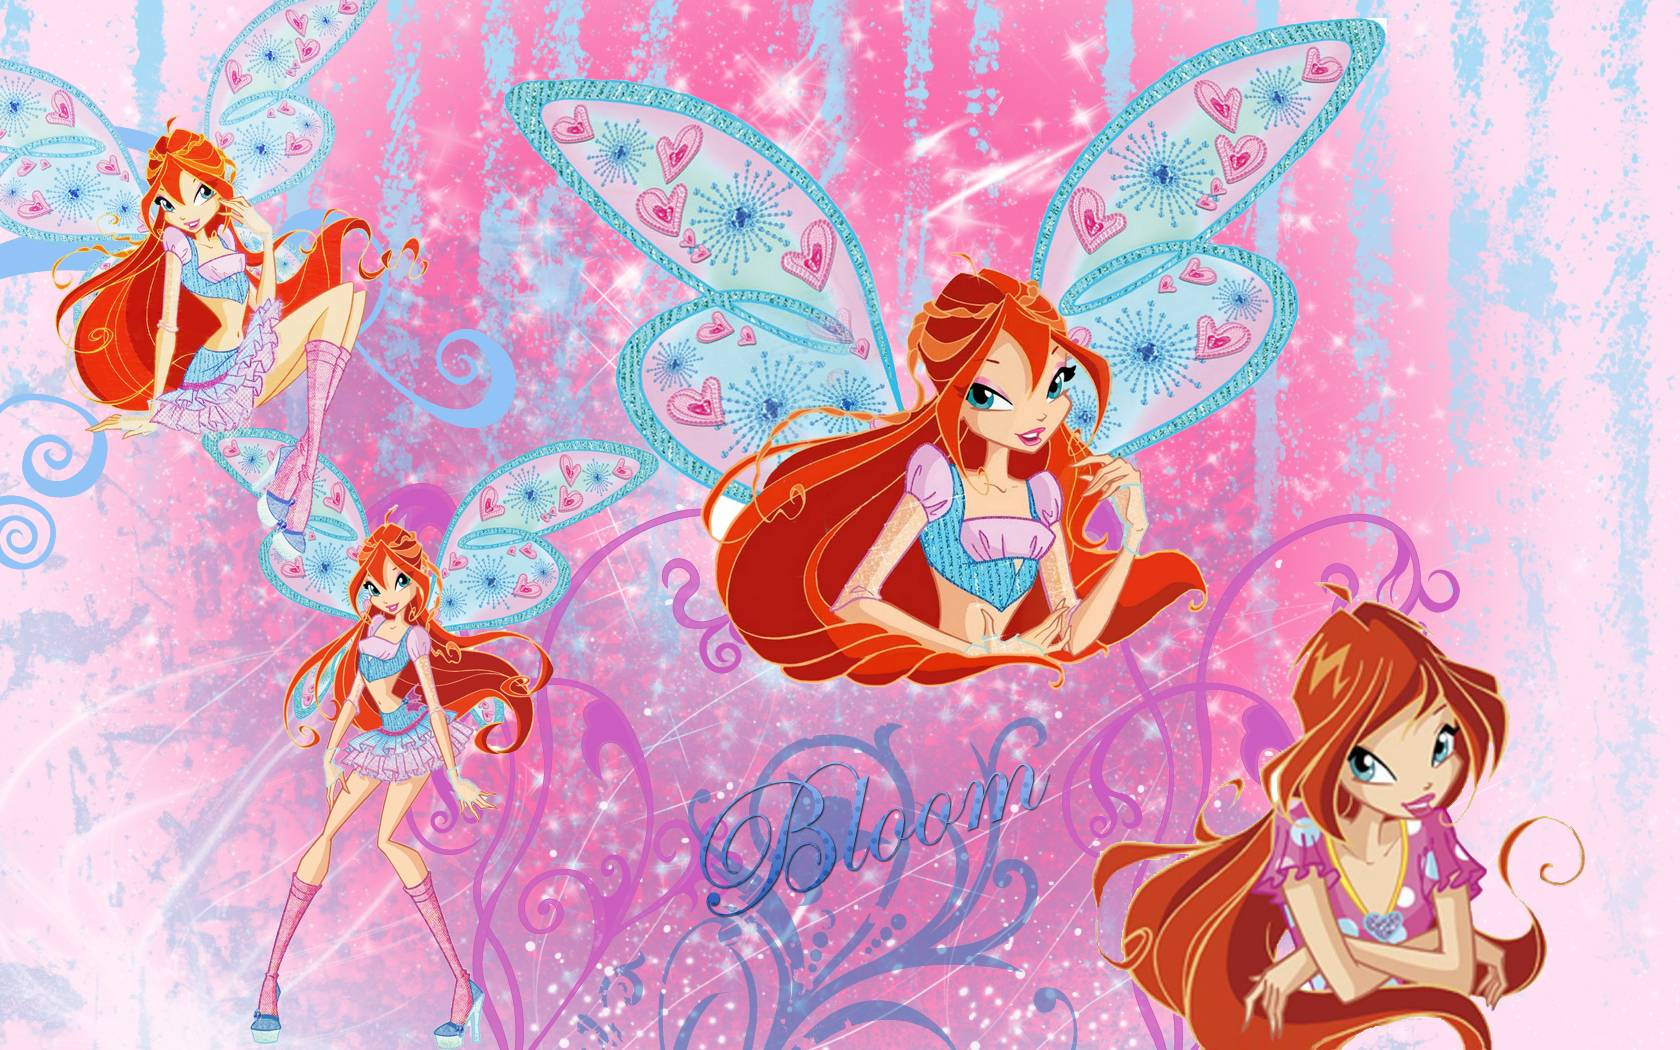 Winx club bloom wallpapers wallpaper cave bloom wallpaper the winx club wallpaper 36416330 fanpop altavistaventures Image collections